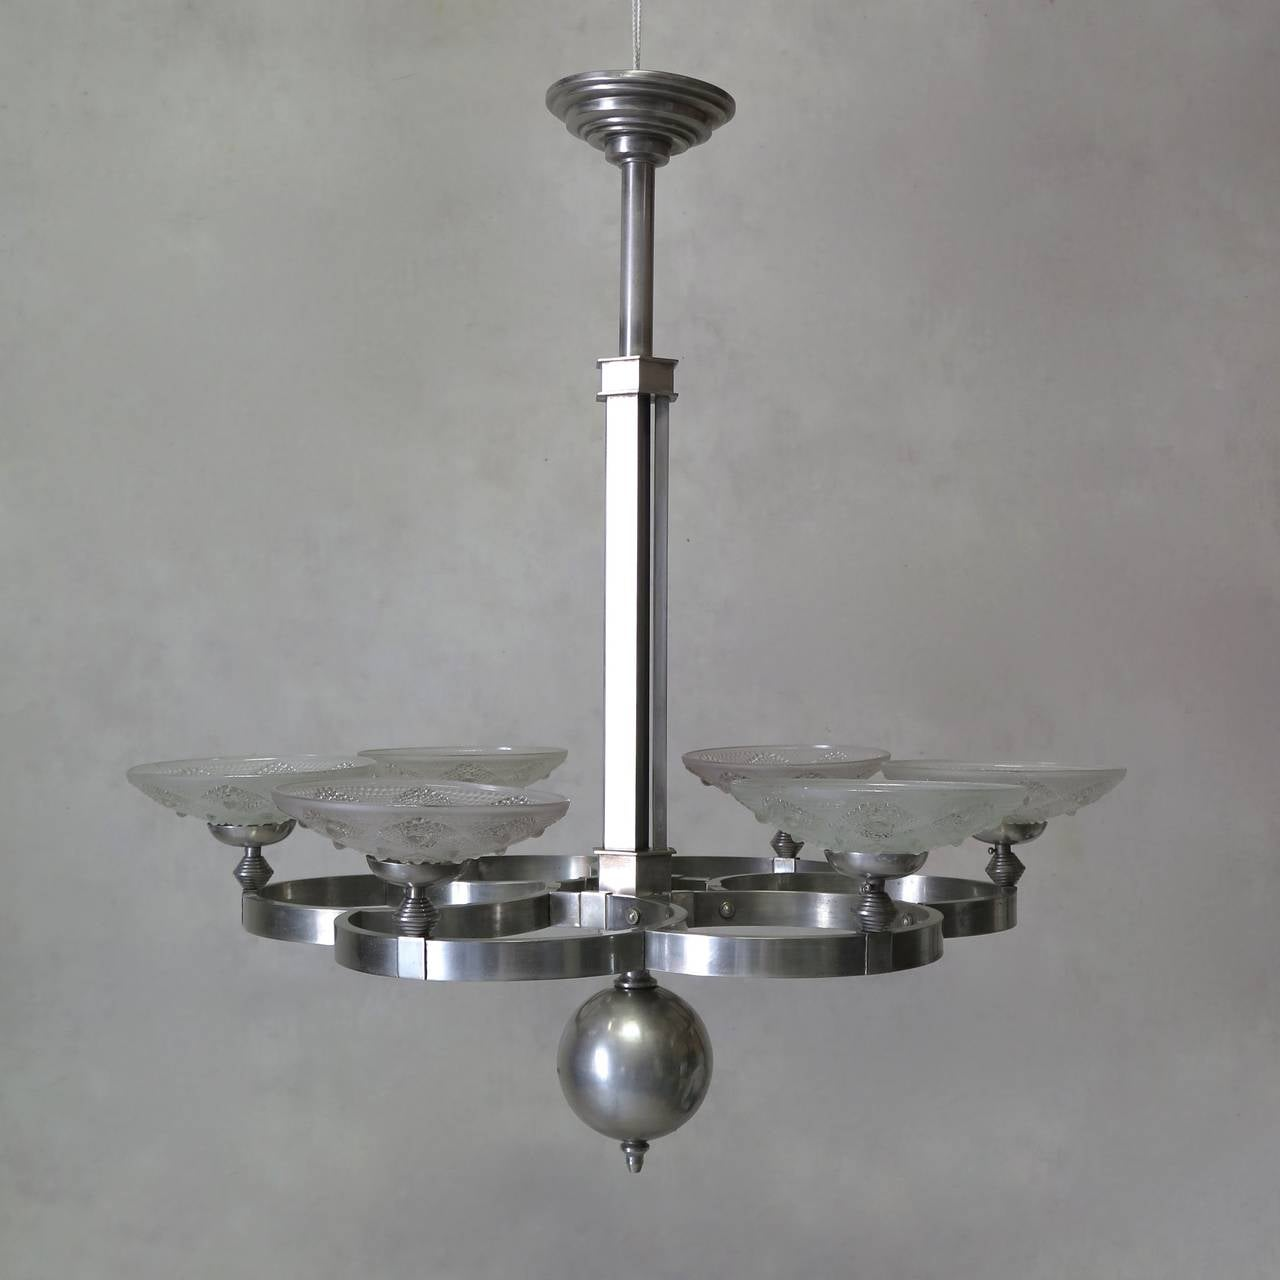 Art Deco French 1930s Modernist Chandelier For Sale